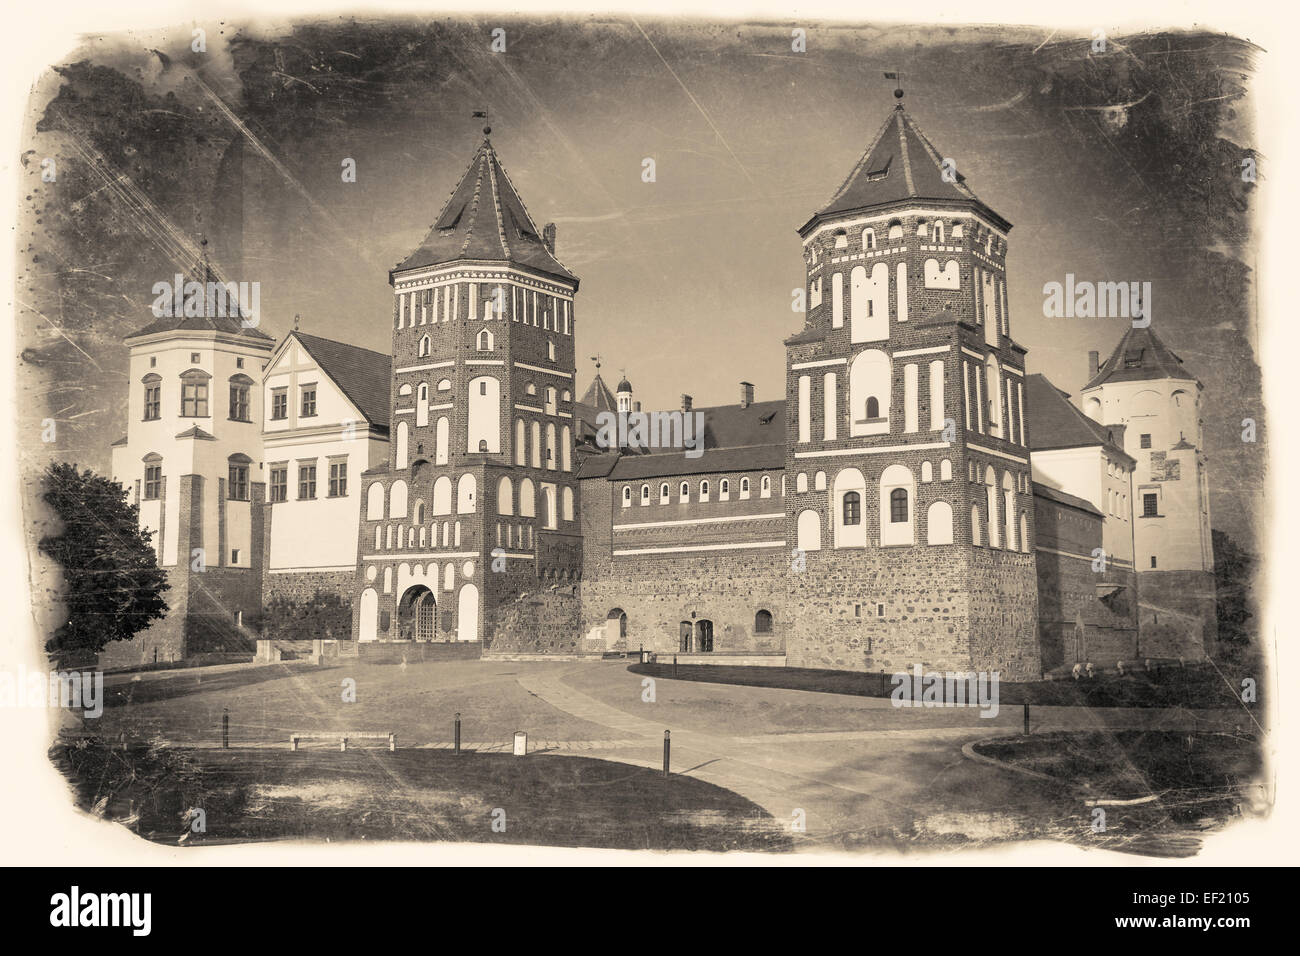 Vintage retro stylized travel image of  belorussian tourist landmark attraction Mir Castle. - Stock Image